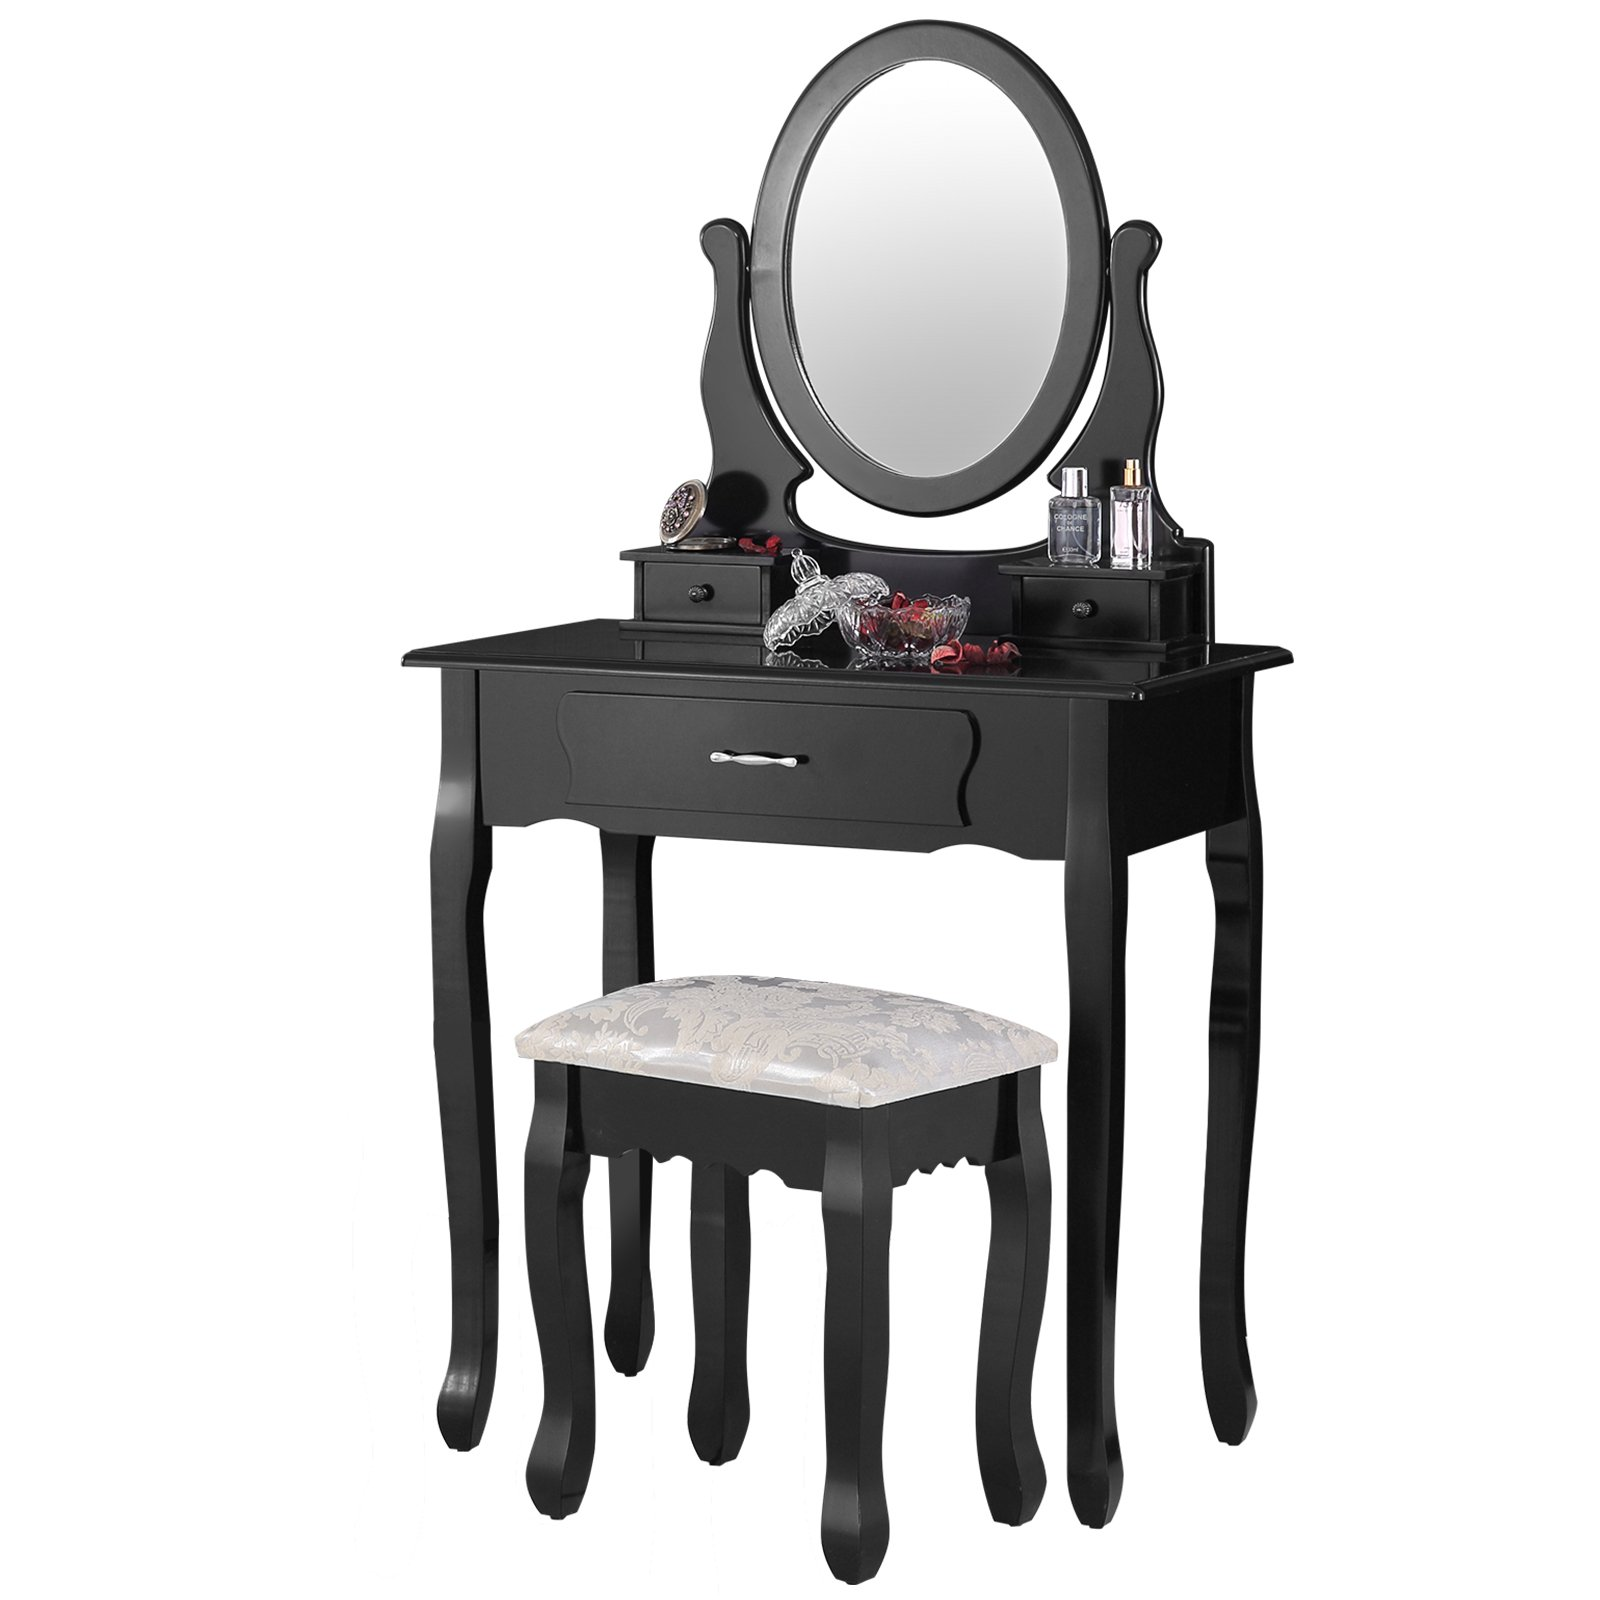 Mecor Vanity table Makeup Set Dressing Table with Stool,3 Drawers and Oval Mirror ,Black